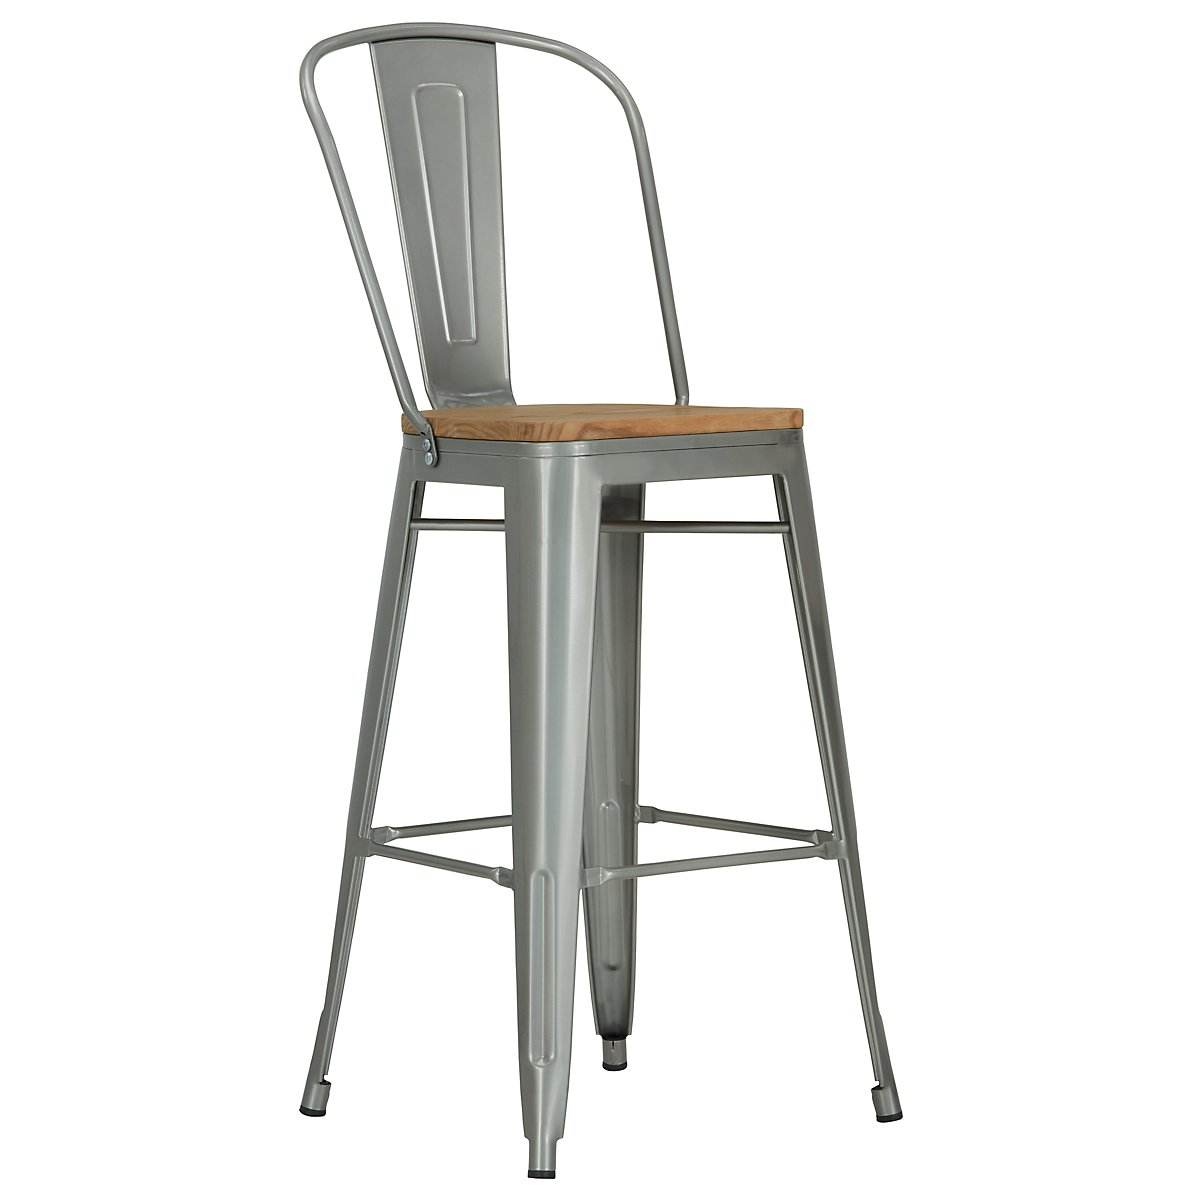 "Huntley Light Tone 30"" Wood Barstool"